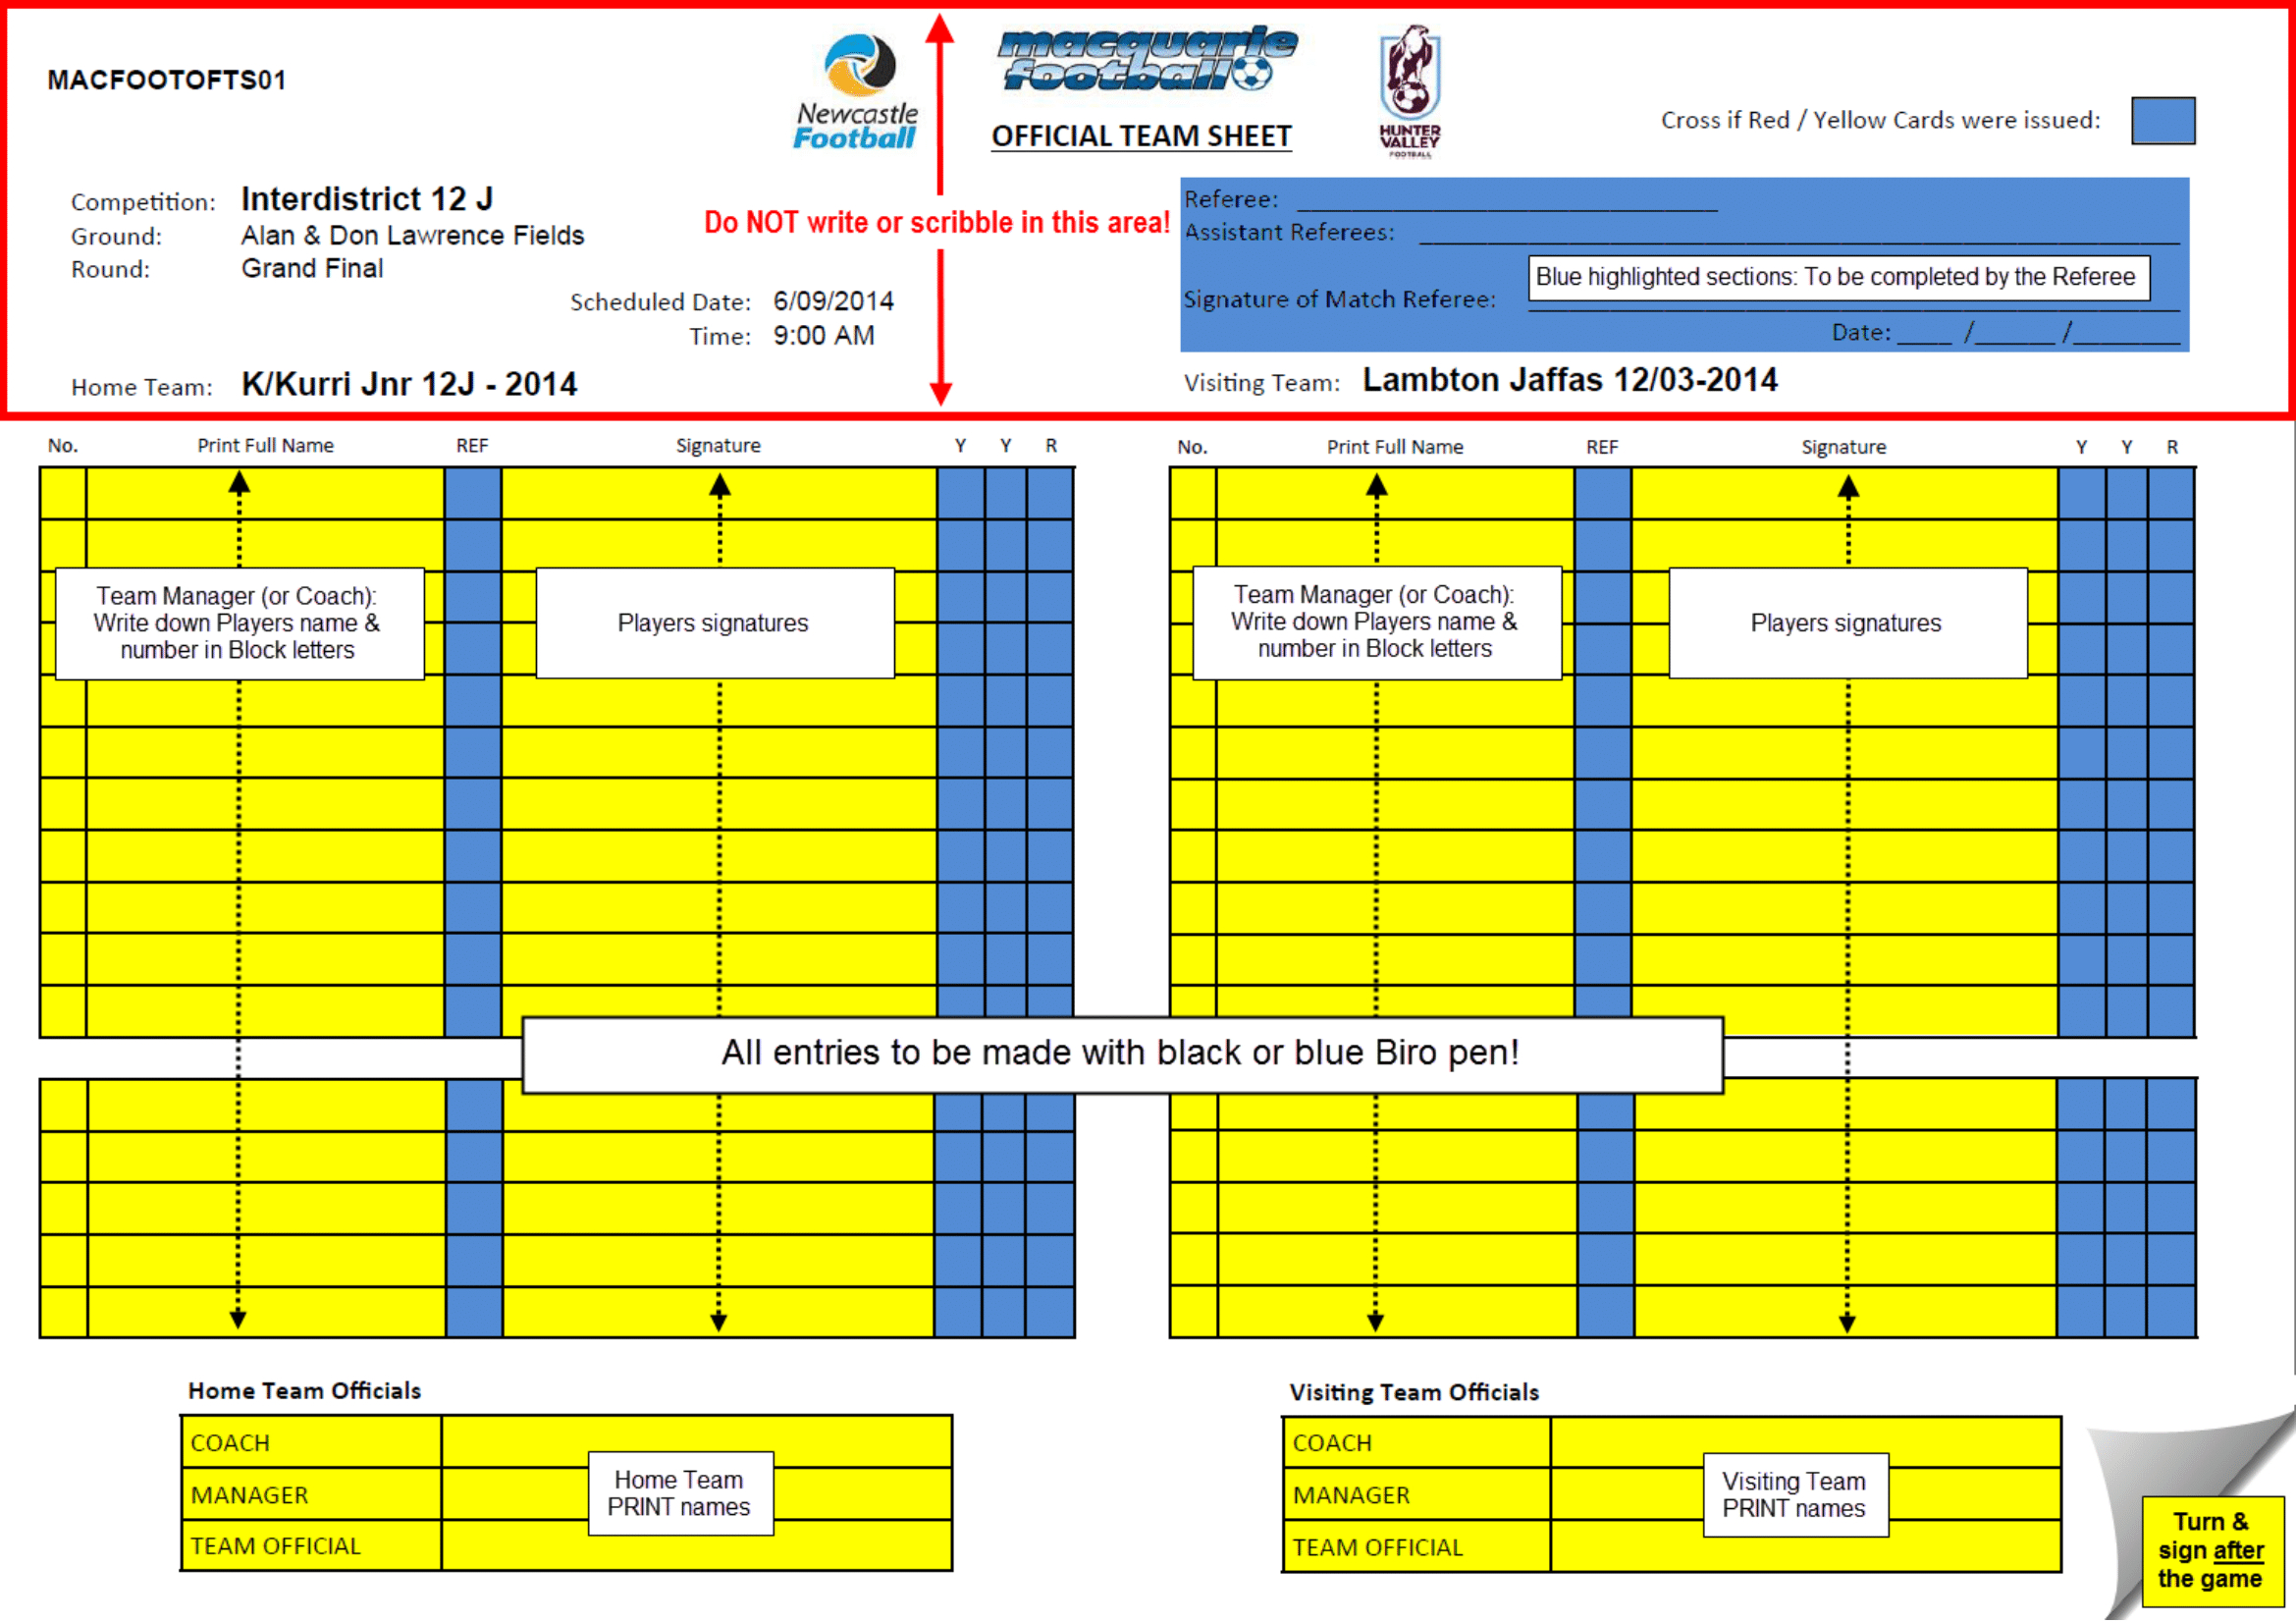 What Do The Referees Write During The Matches? - Sports pertaining to Soccer Referee Game Card Template